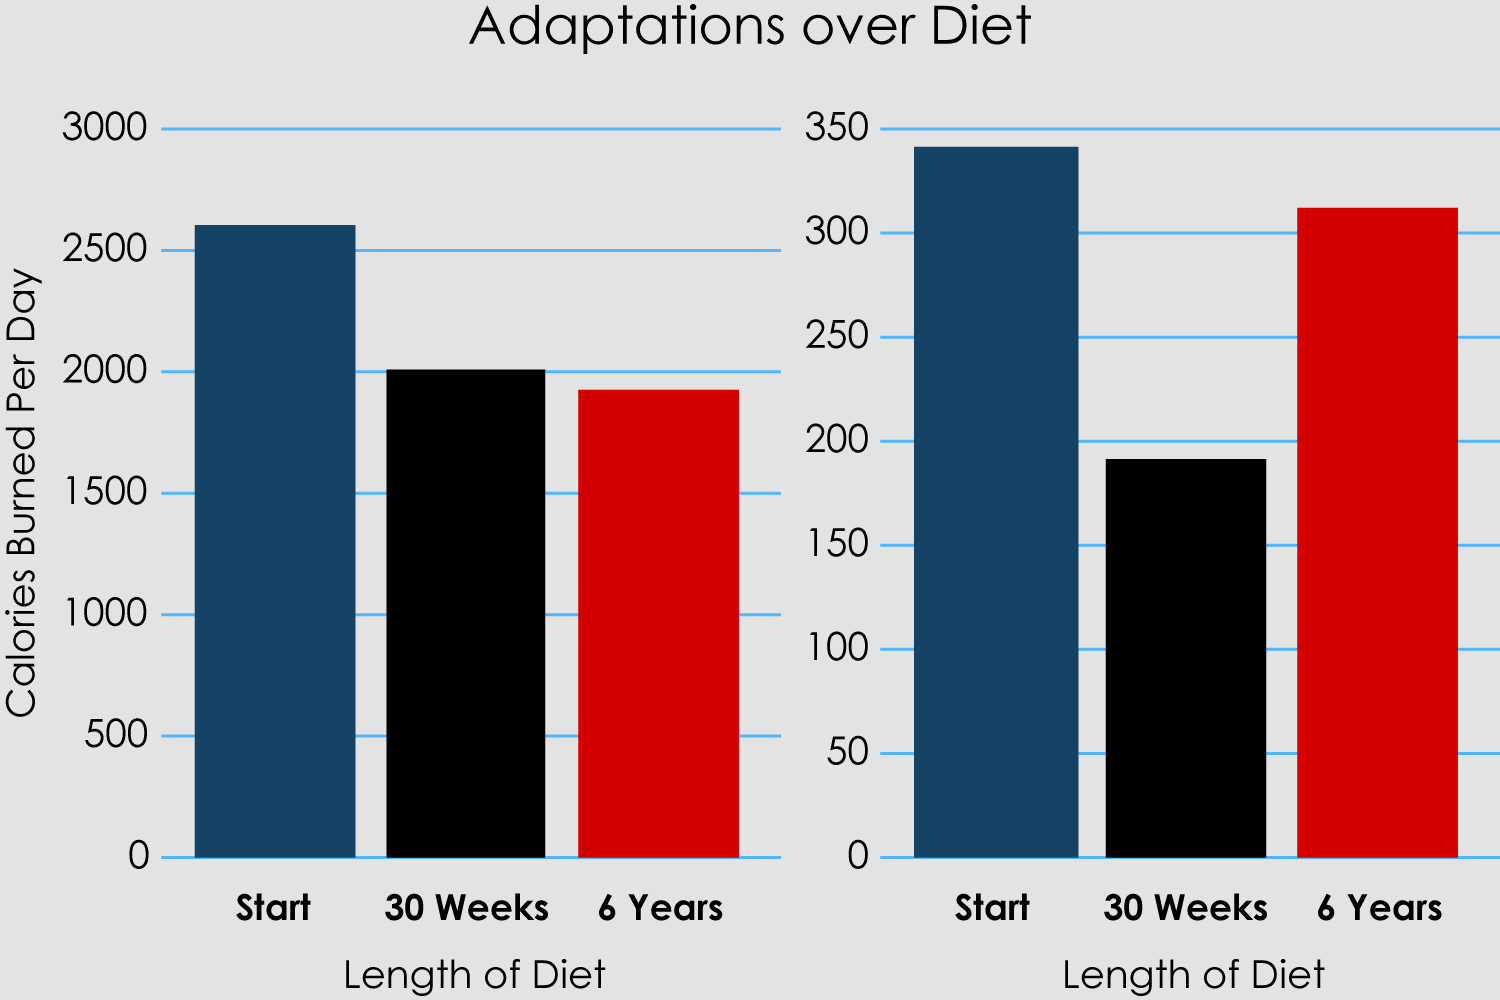 Adaptations-over-diet